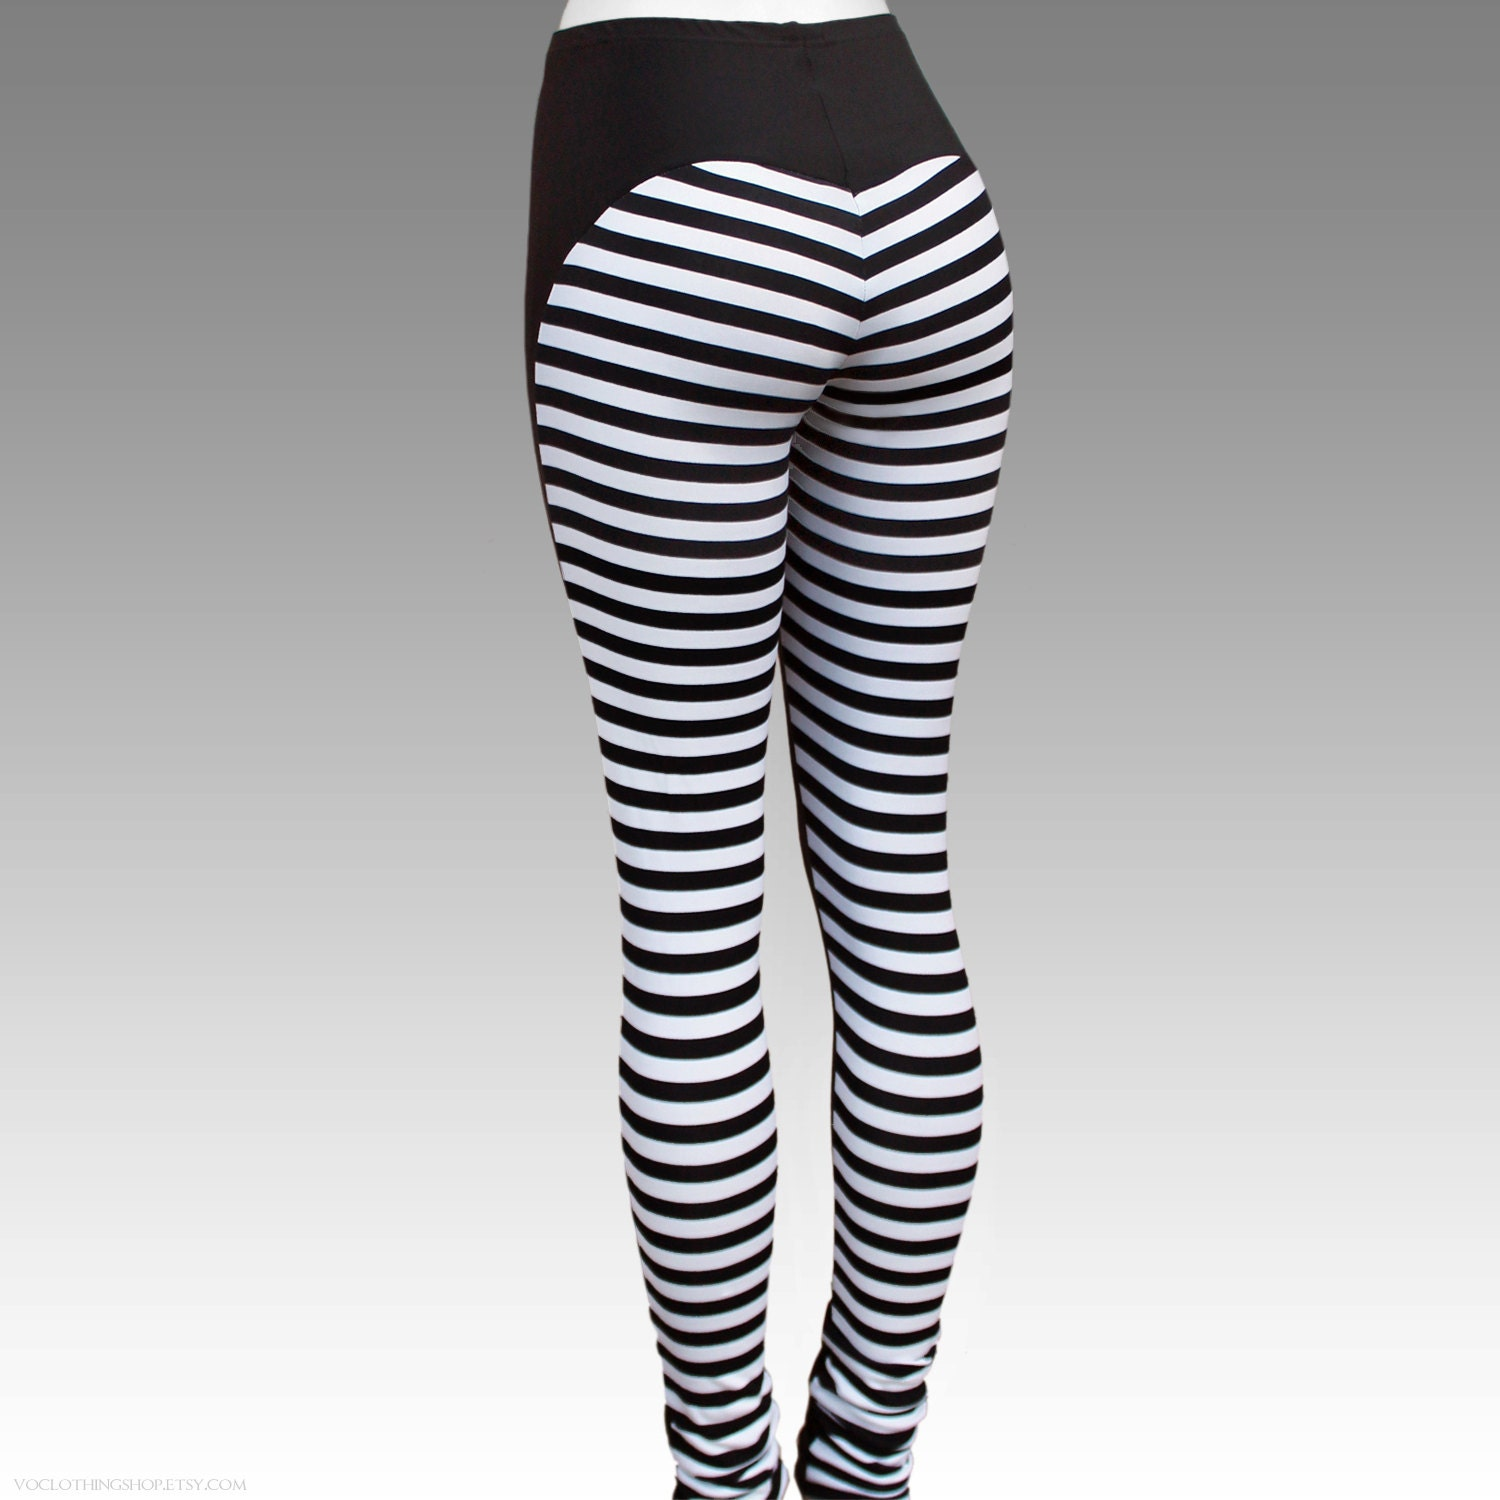 * FlexTek Smooth mid-rise leggings with mesh stripe on back of legs * Flatlock seams * Ankle-length hits at the ankle Imported. Fabric: Nylon/Spandex.